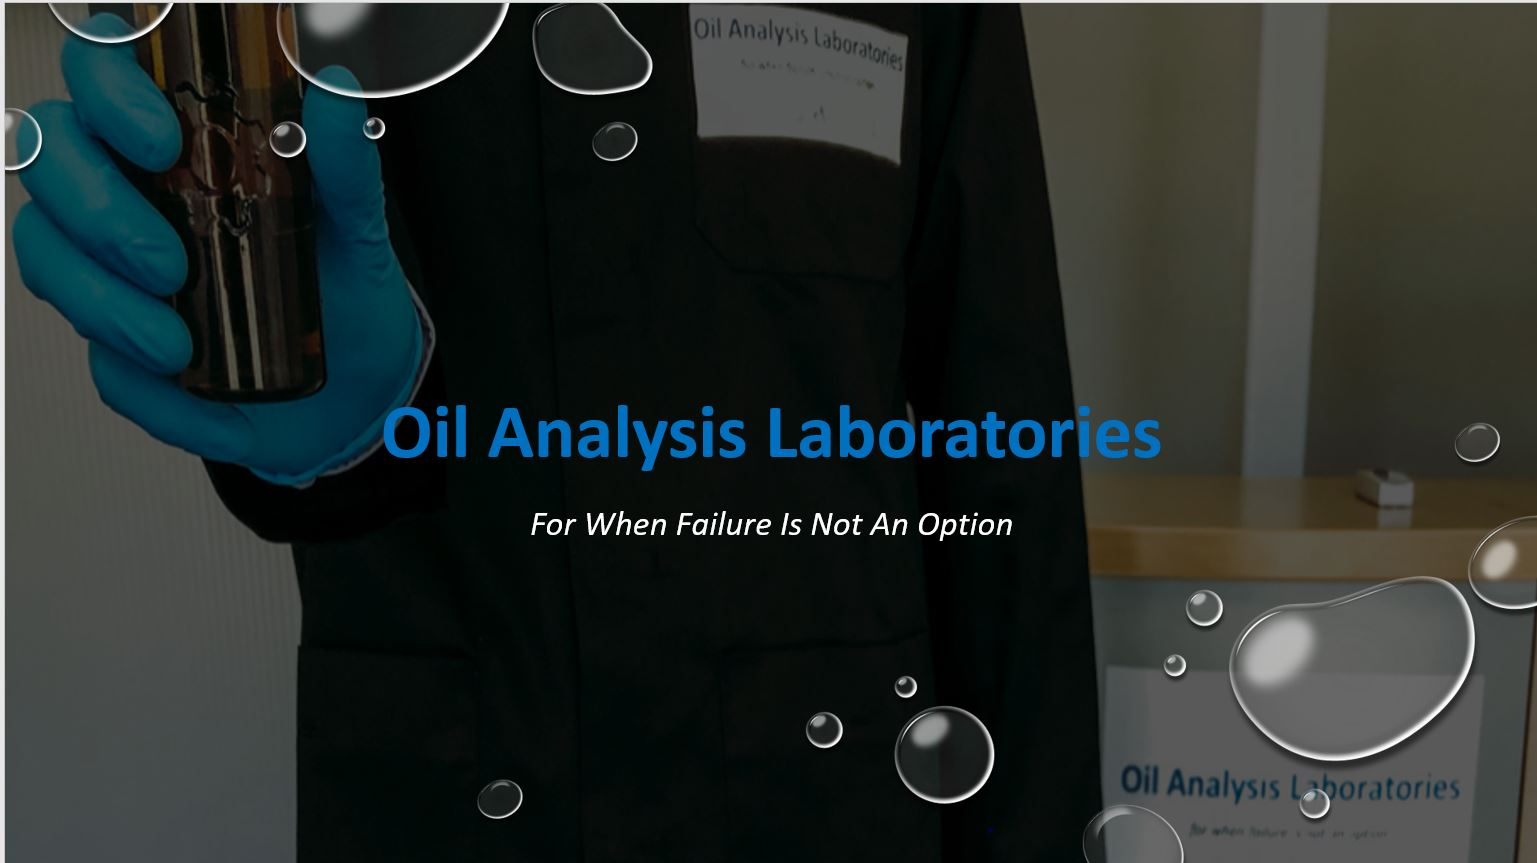 All About Oil Analysis